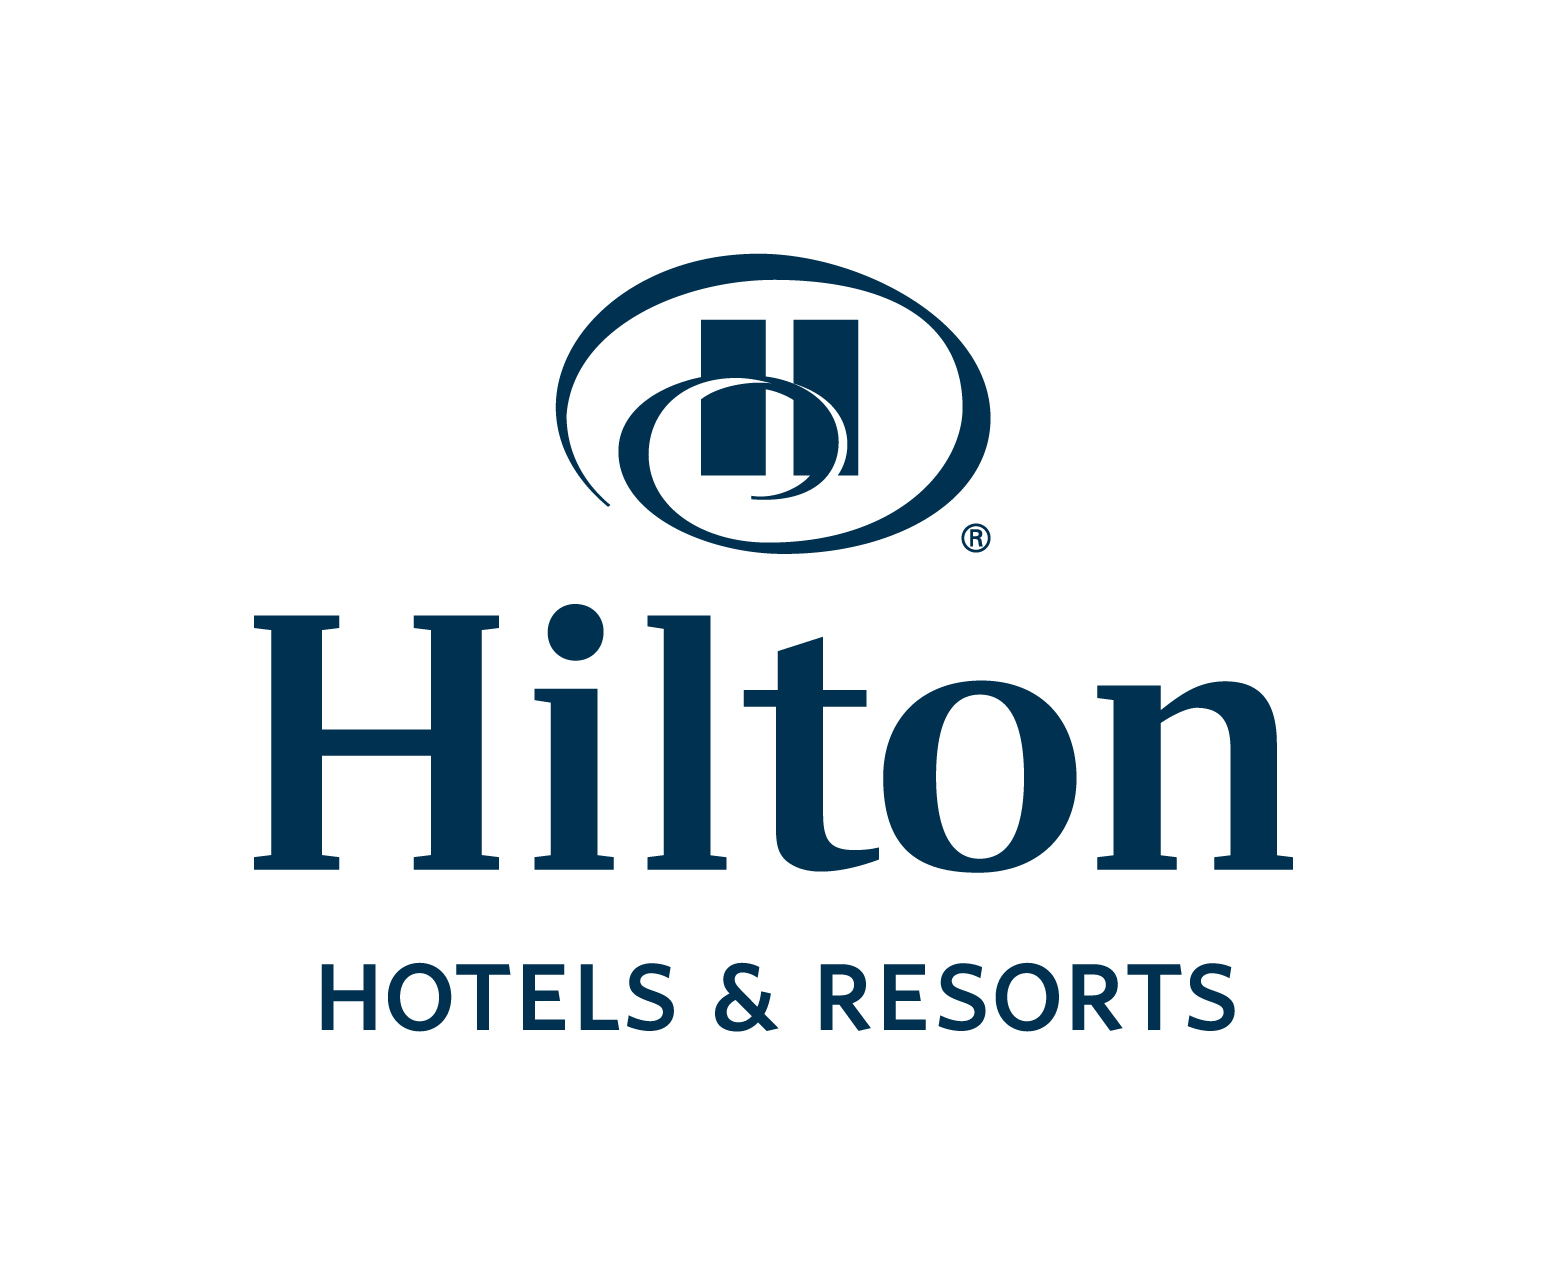 hotel and restaurants logos